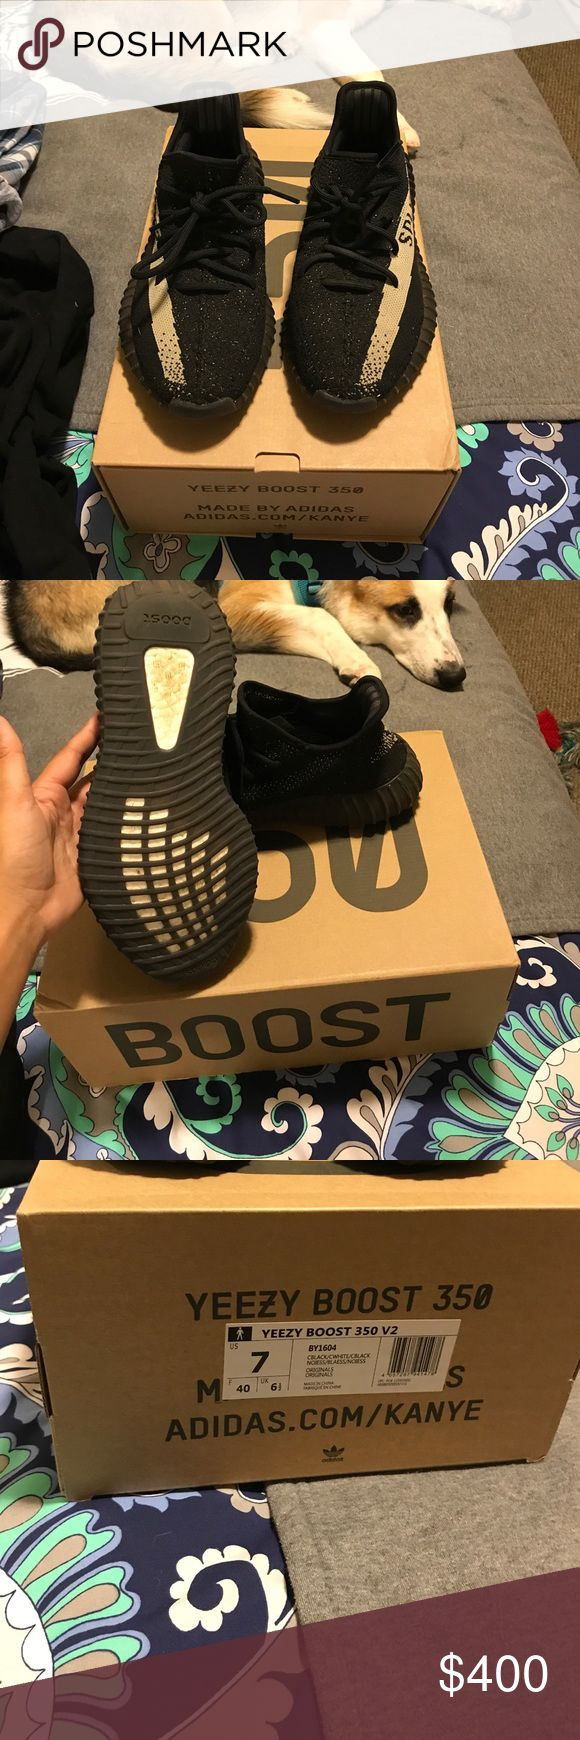 Yeezys Boost 350 V2 Oreo Used Yeezy Boost 350 V2 Oreos. They are used and have normal dirt on the bottoms, but everywhere else is like new. Includes box and original paper as well. Size 7 men's, 8 wowens, euro 40. I will accept reasonable offers, need money soon! Yeezy Shoes Sneakers